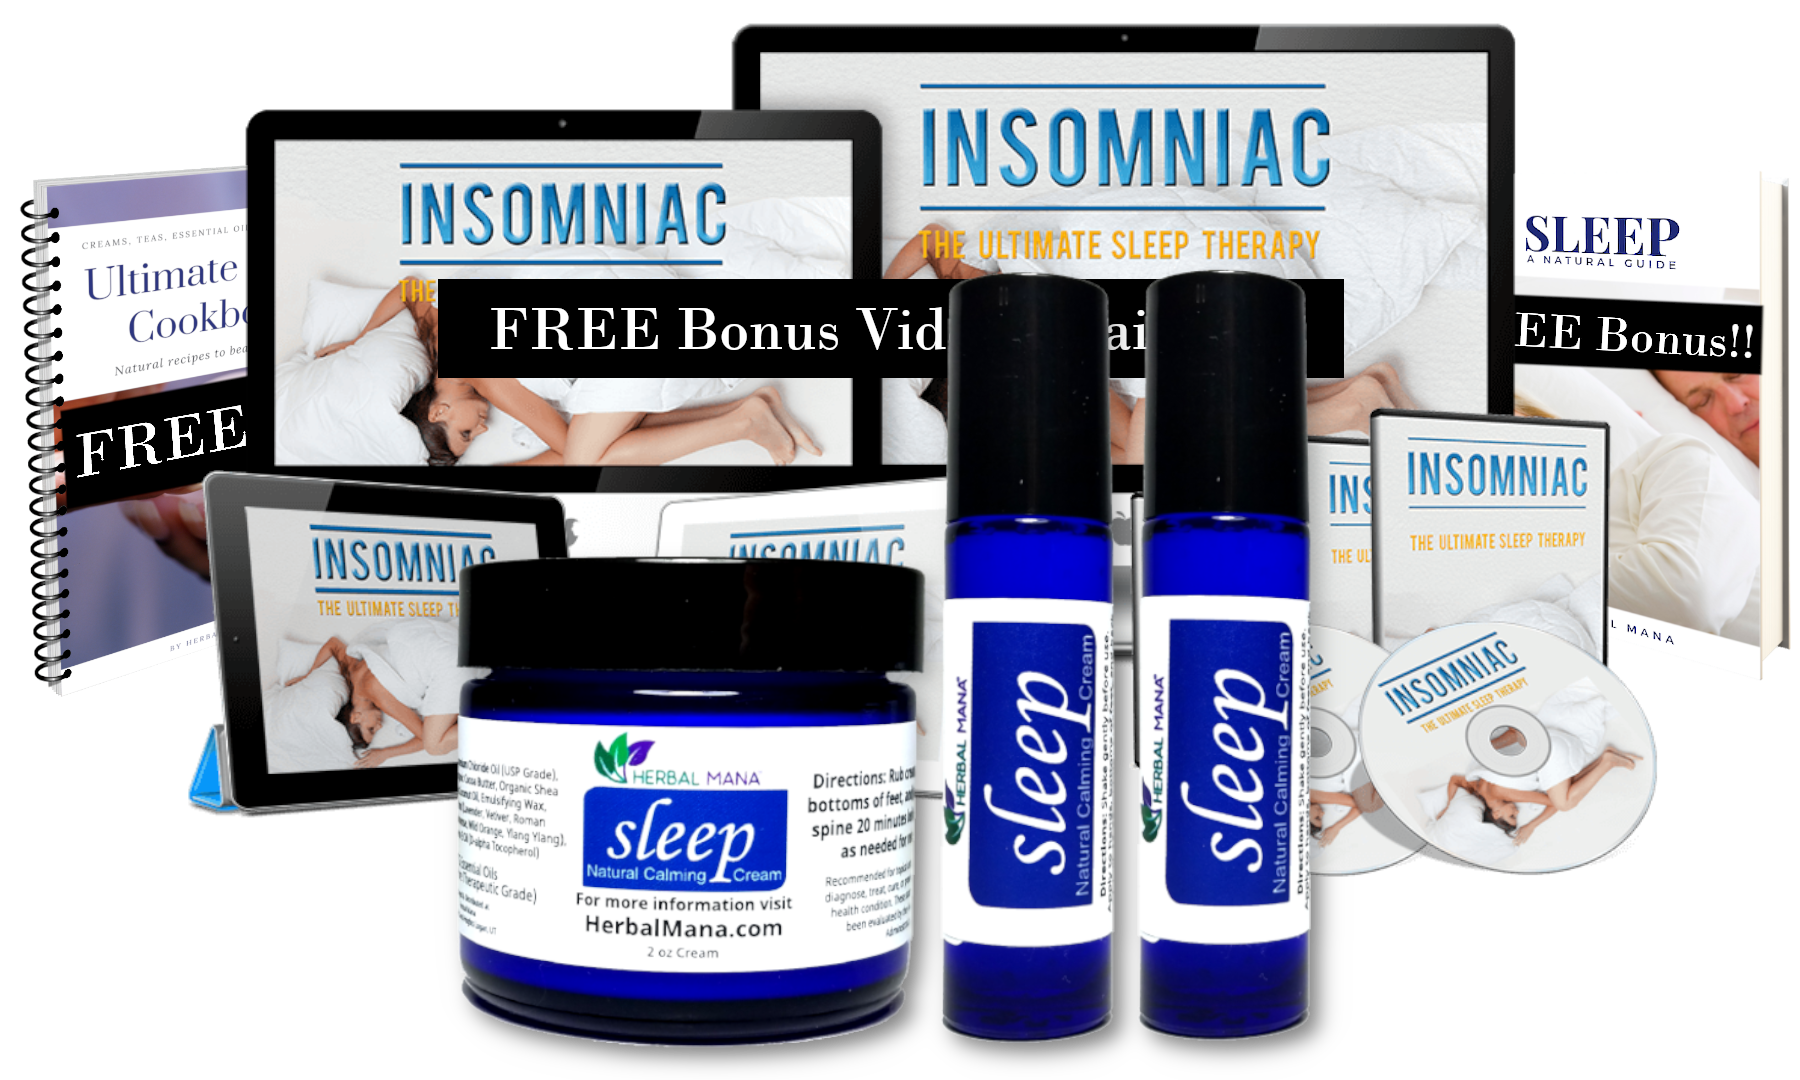 Sleep Therapy Pack with magnesium cream in a blue jar and ebooks